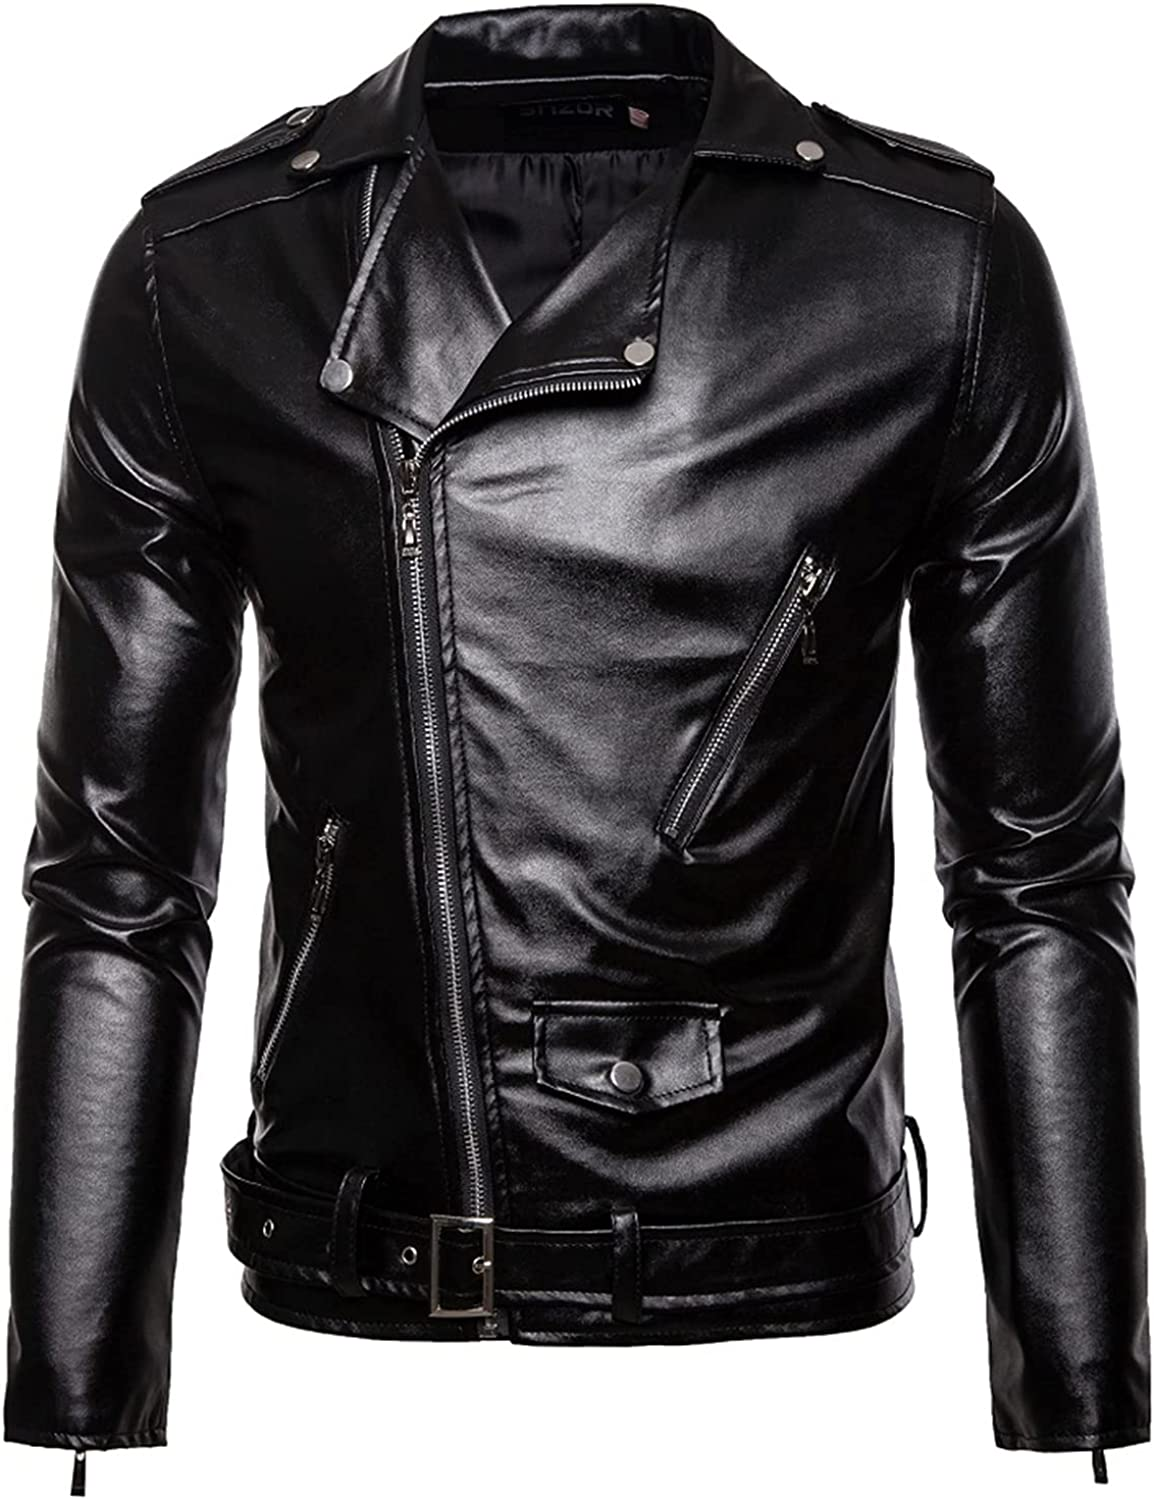 CNBPLS Men's Black Leather Motorcycle Biker Jackets,Slim-Fit Zip-Up Jacket with Lapel,for Leisure Outdoor Riding, Etc.